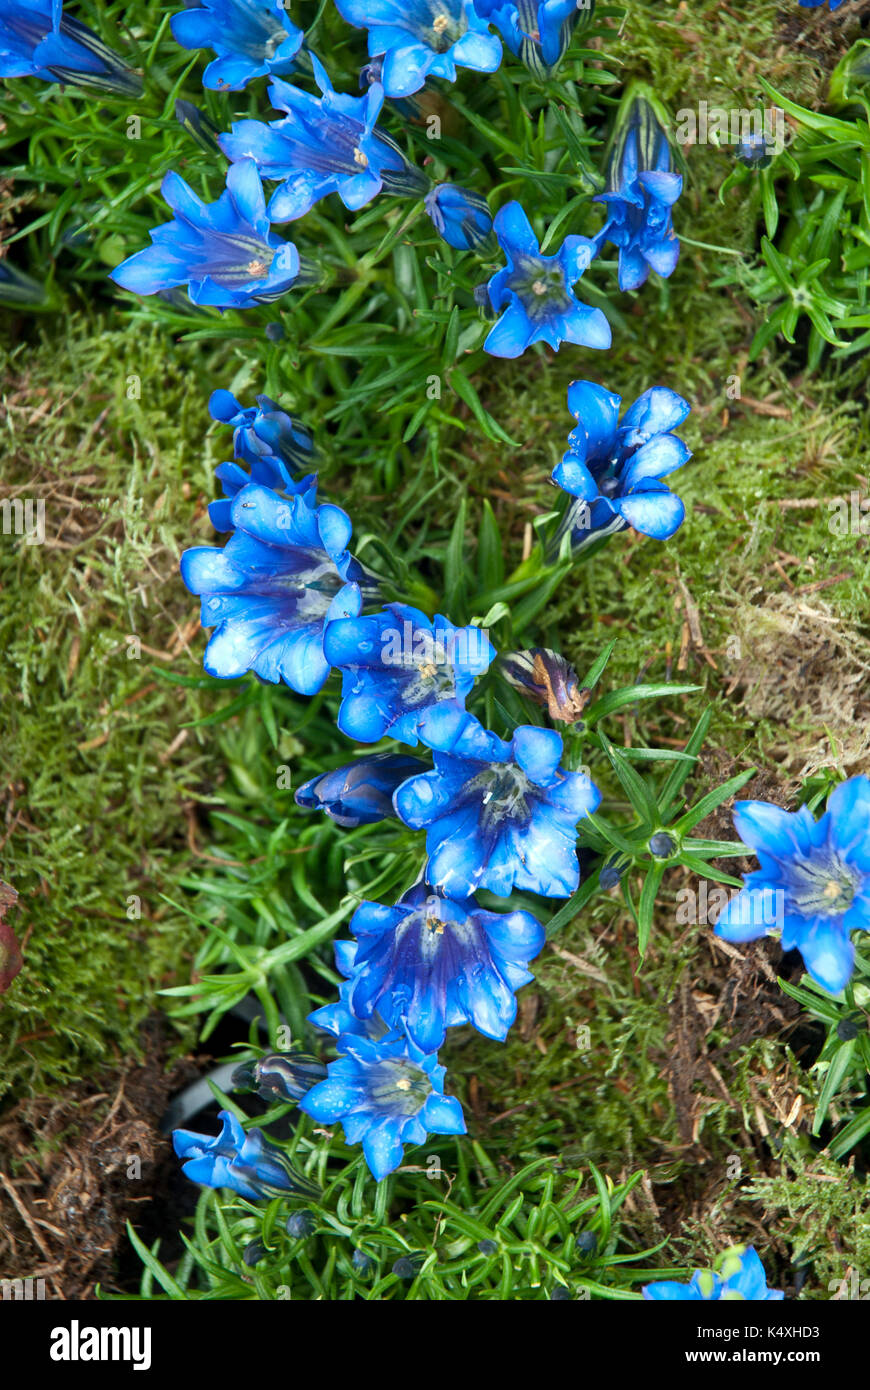 Bright blue gentian violets growing in mossy garden, gentian acaulis (gentiana,gentianeae,gentianinae) - Stock Image